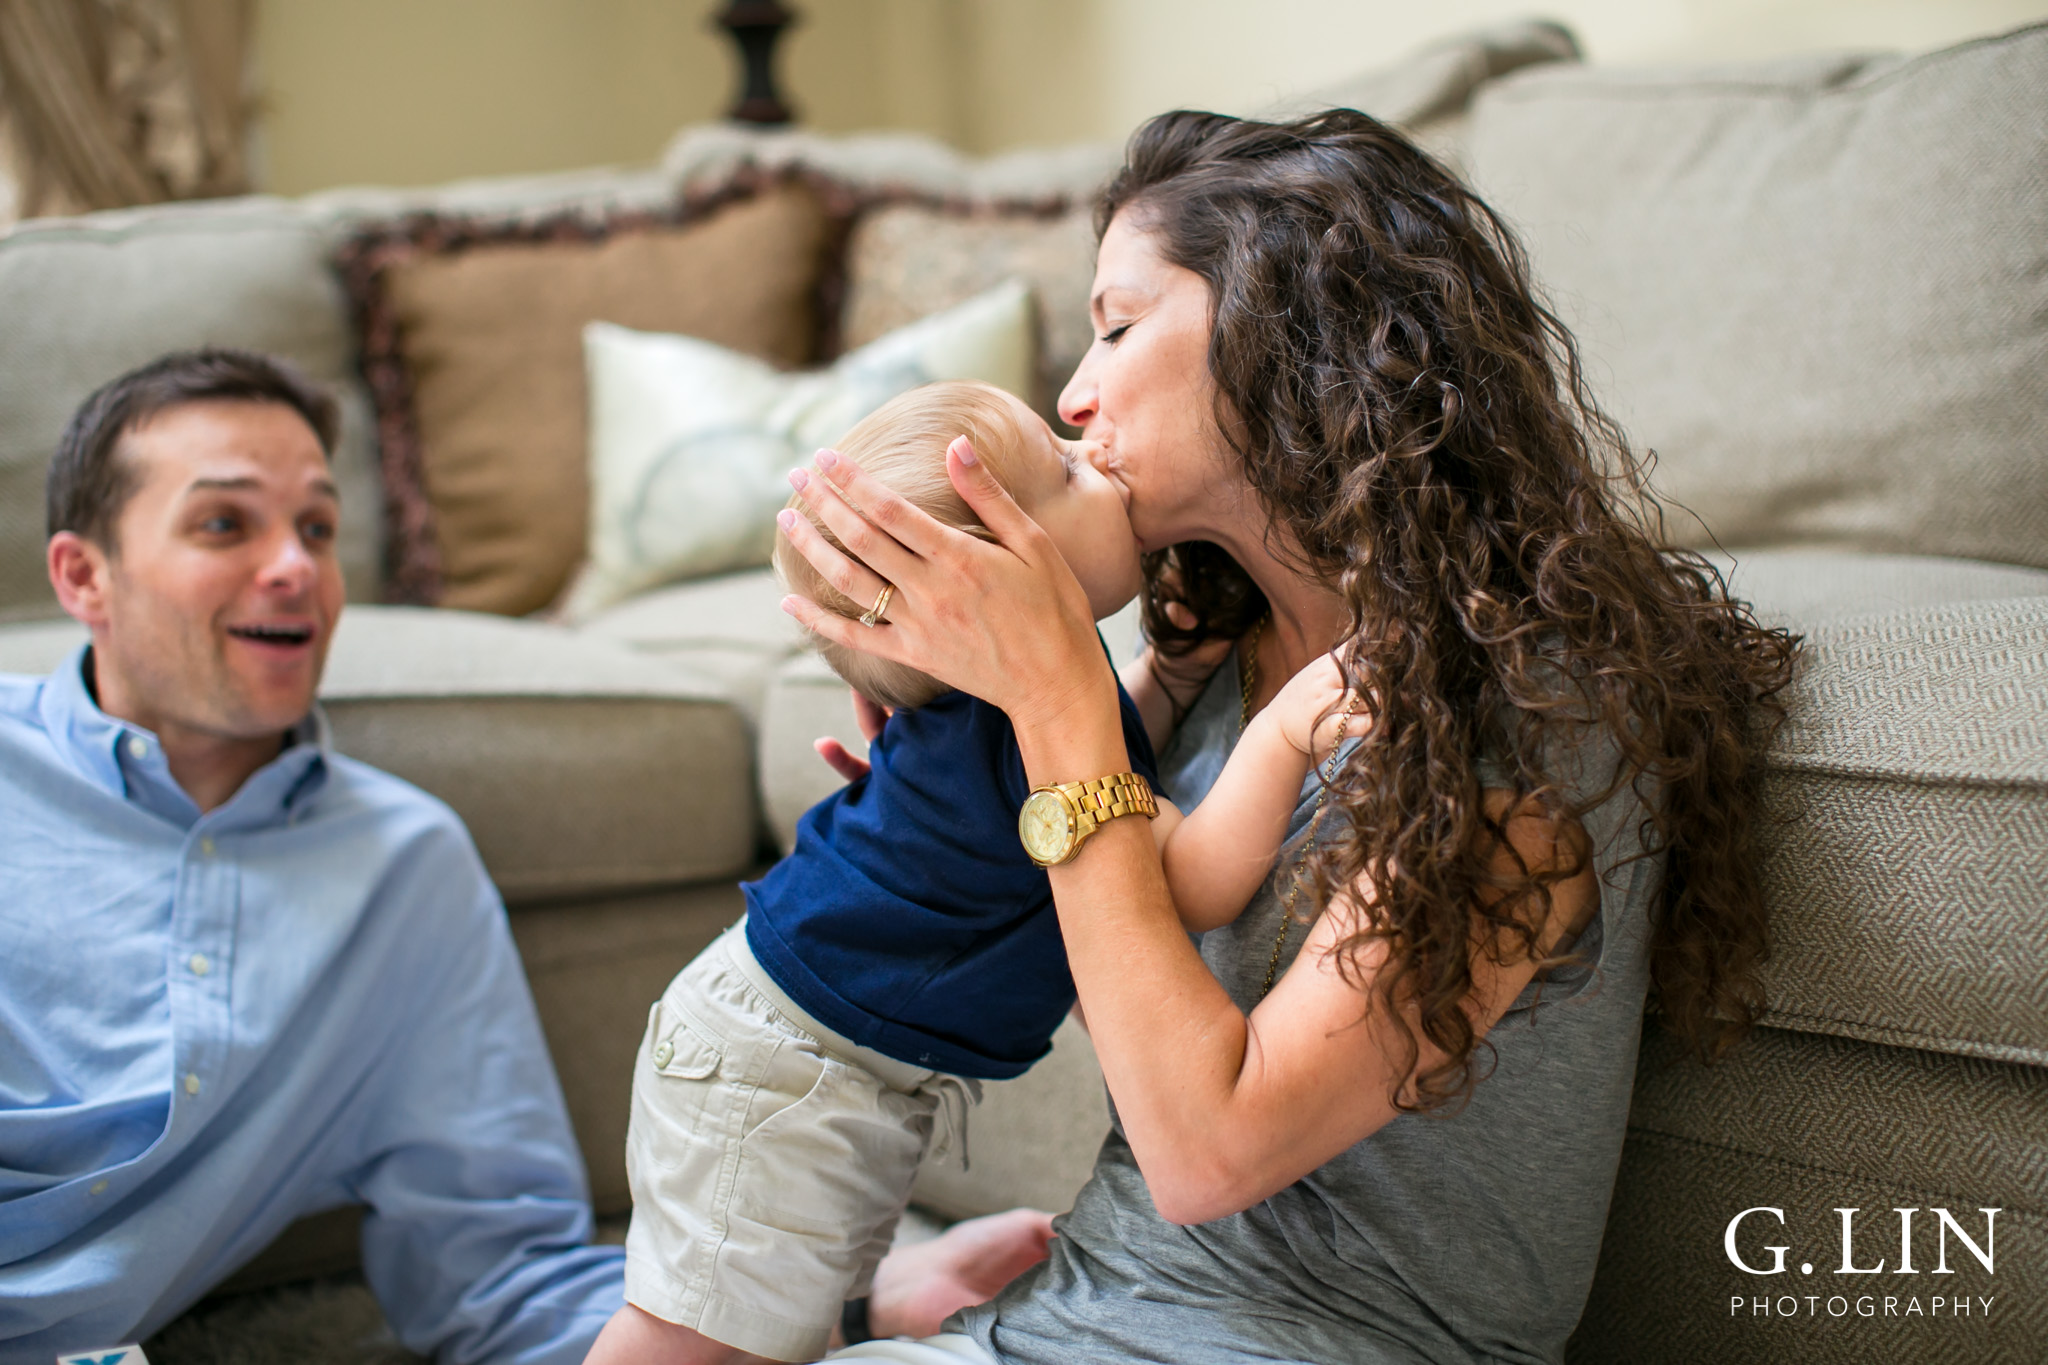 Raleigh Family Photographer | G. Lin Photography | Baby kissing mommy on the cheek in the living room